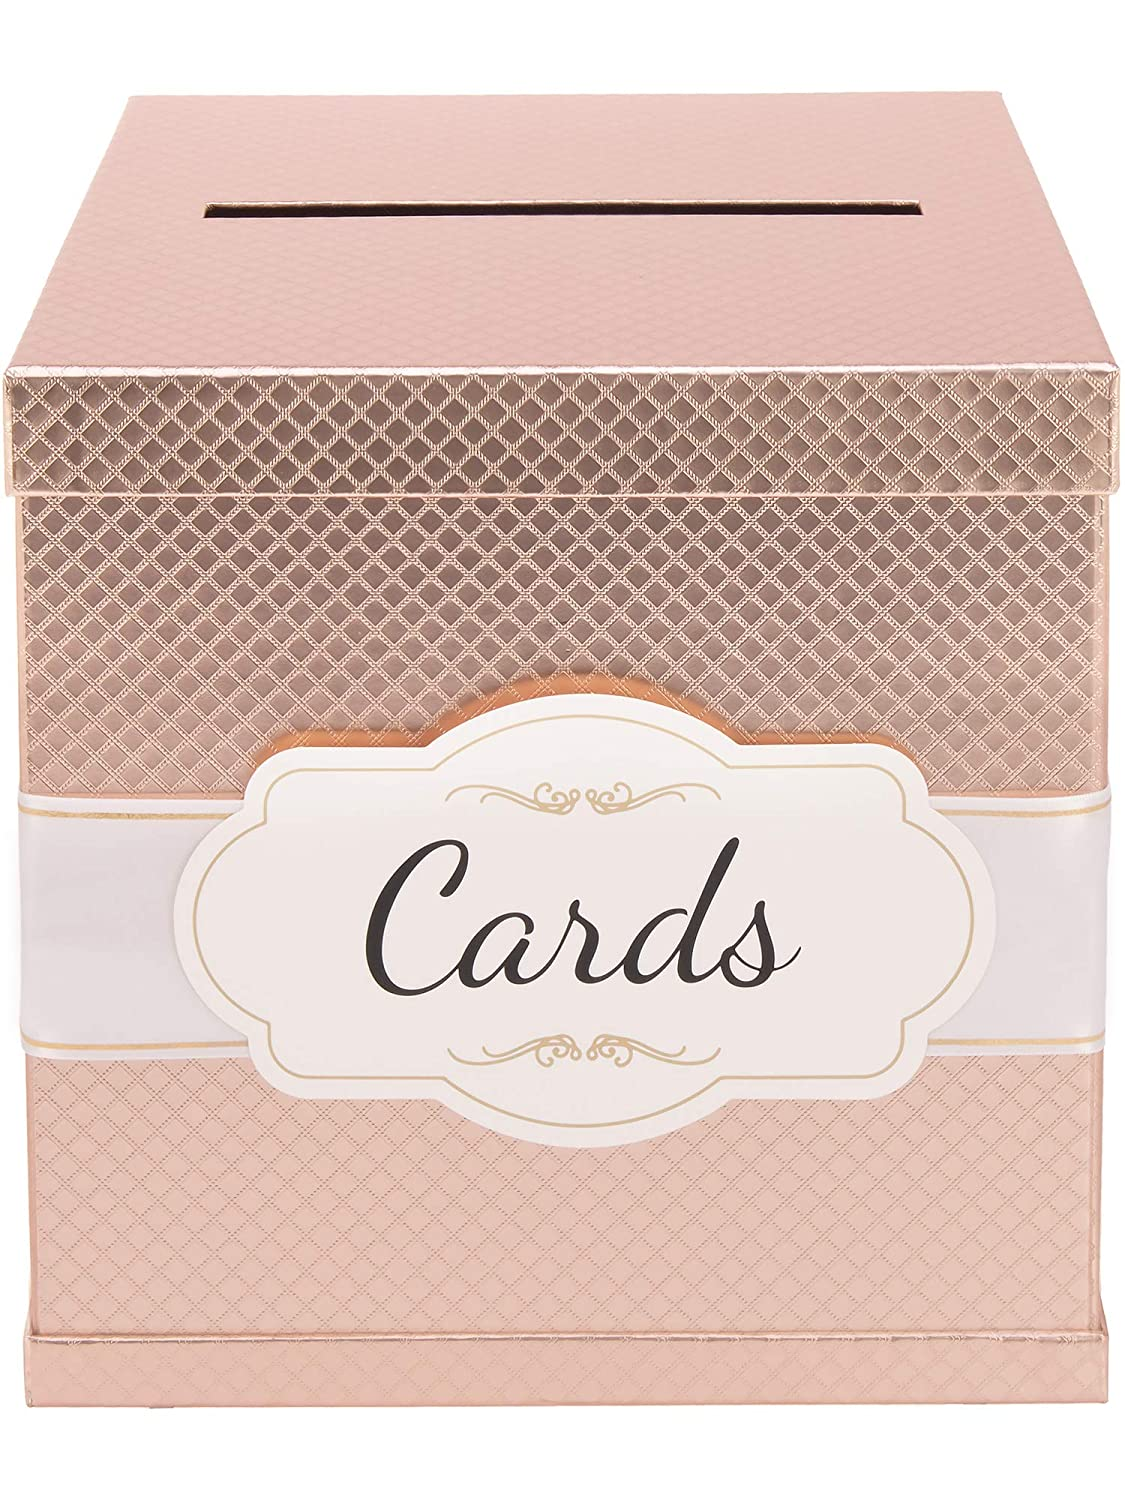 Merry Expressions Personalized Custom Card 7.5 x 4.5 Gold Foil Edges Printed Sign for Rose Gold Card Box with Adhesive Strips on The Back